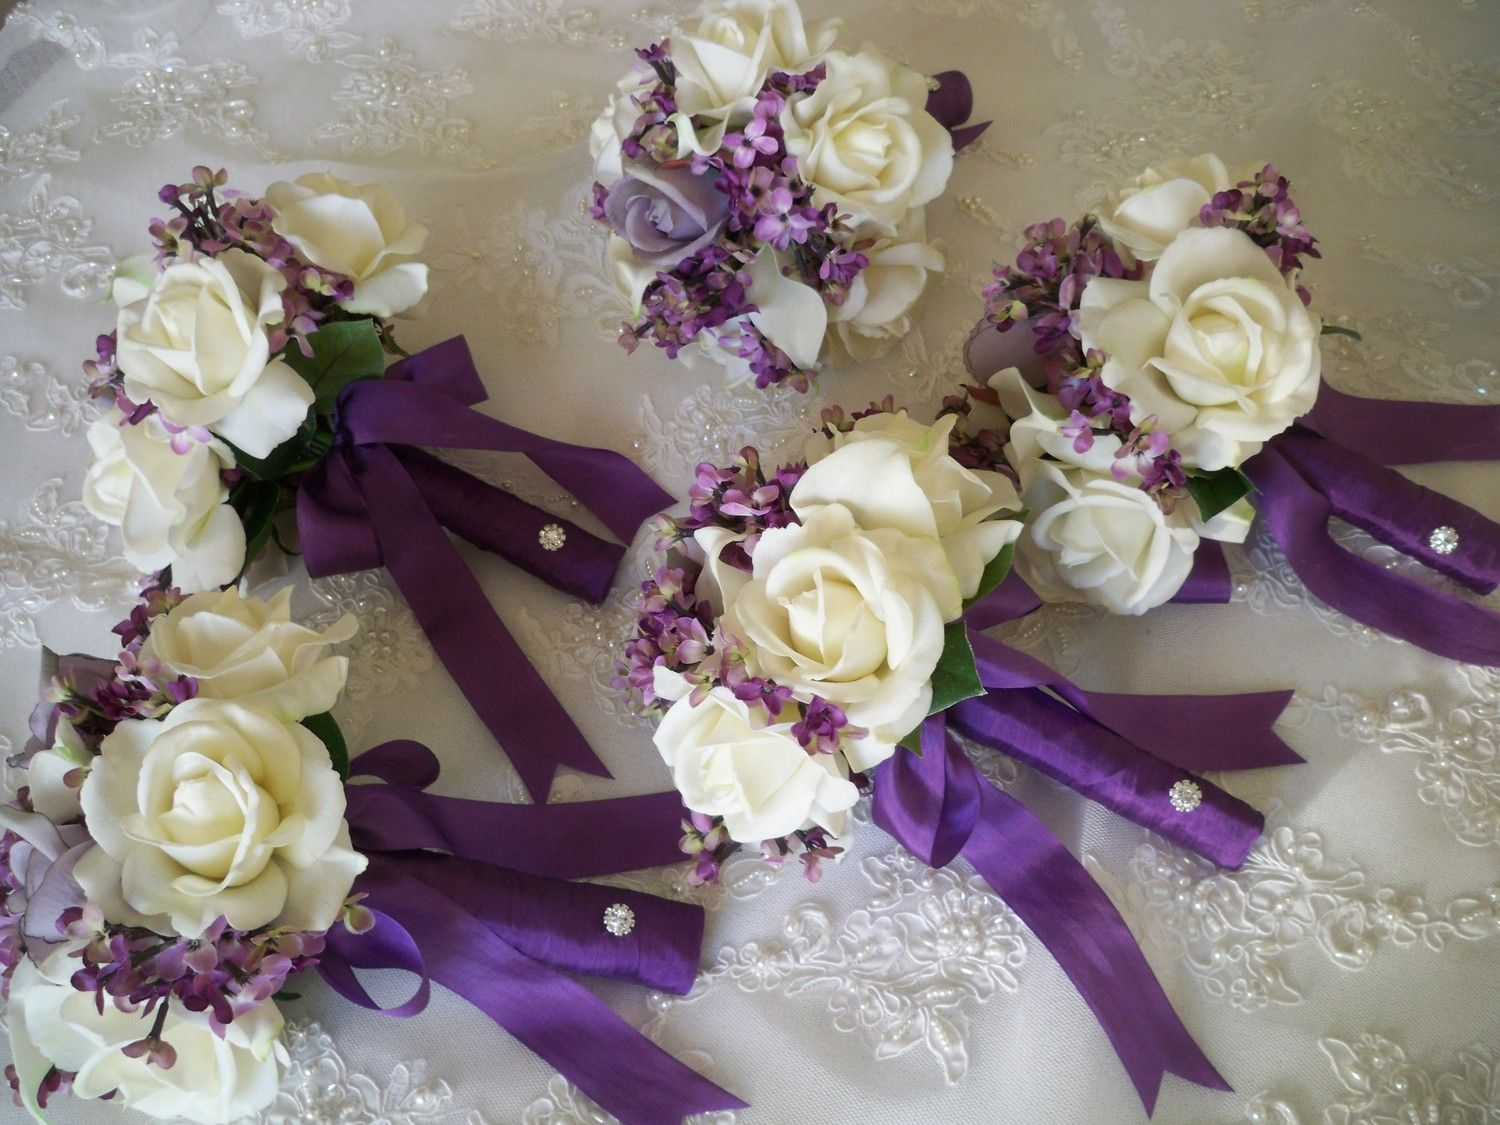 Silk Flower Bouquet Of Lilacs And Realtouch Rose Bridal Bridesmaids Boutonniere Destination Wedding